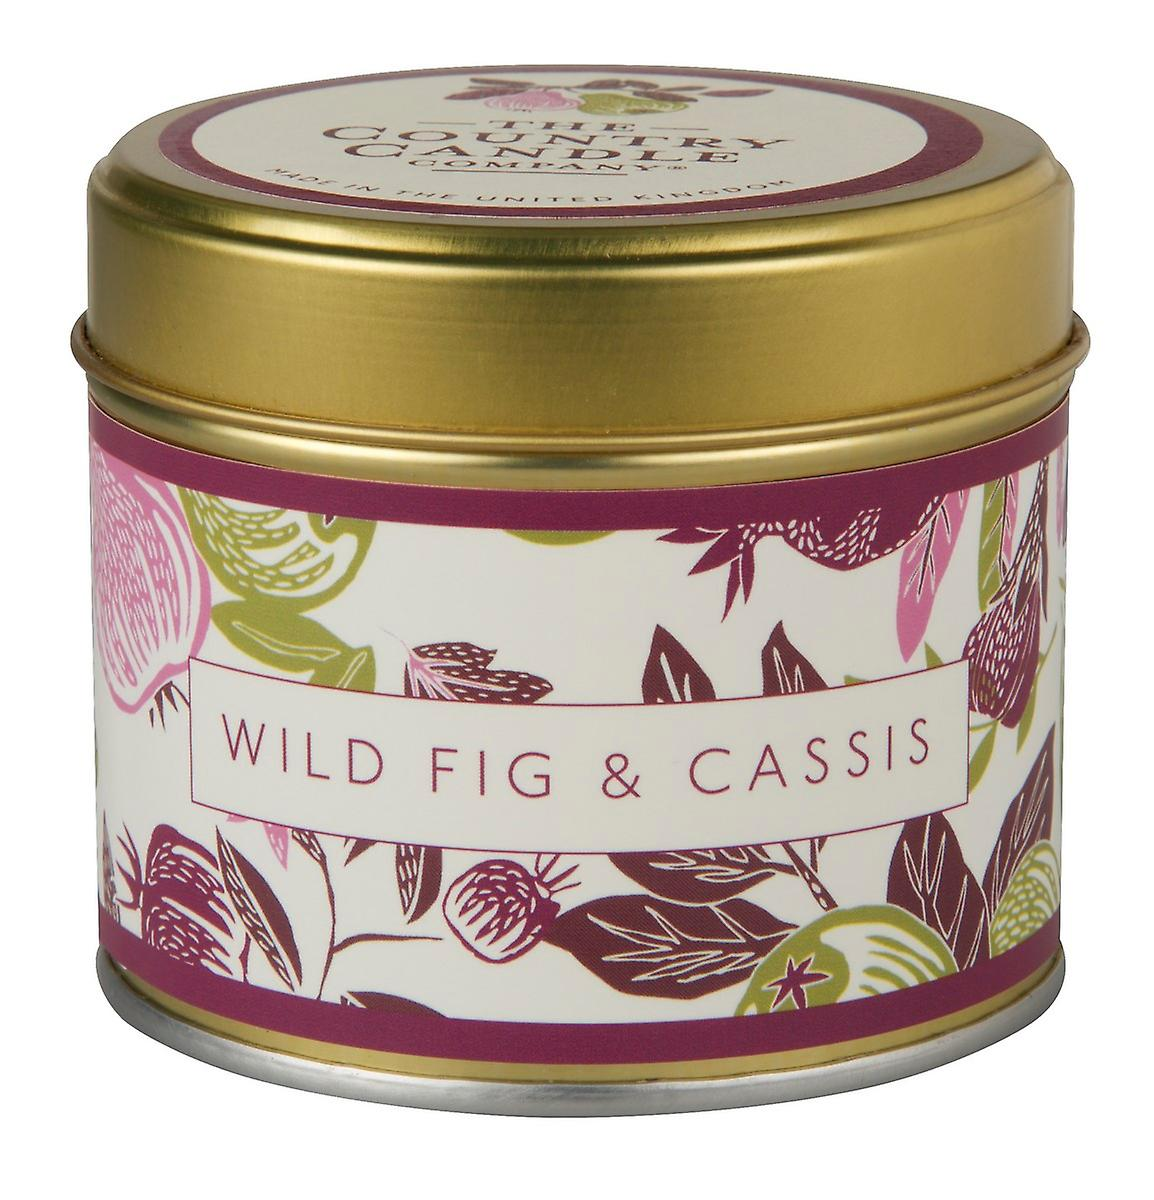 Fragrant Orchard Candle in a Tin - Wild Fig & Cassis